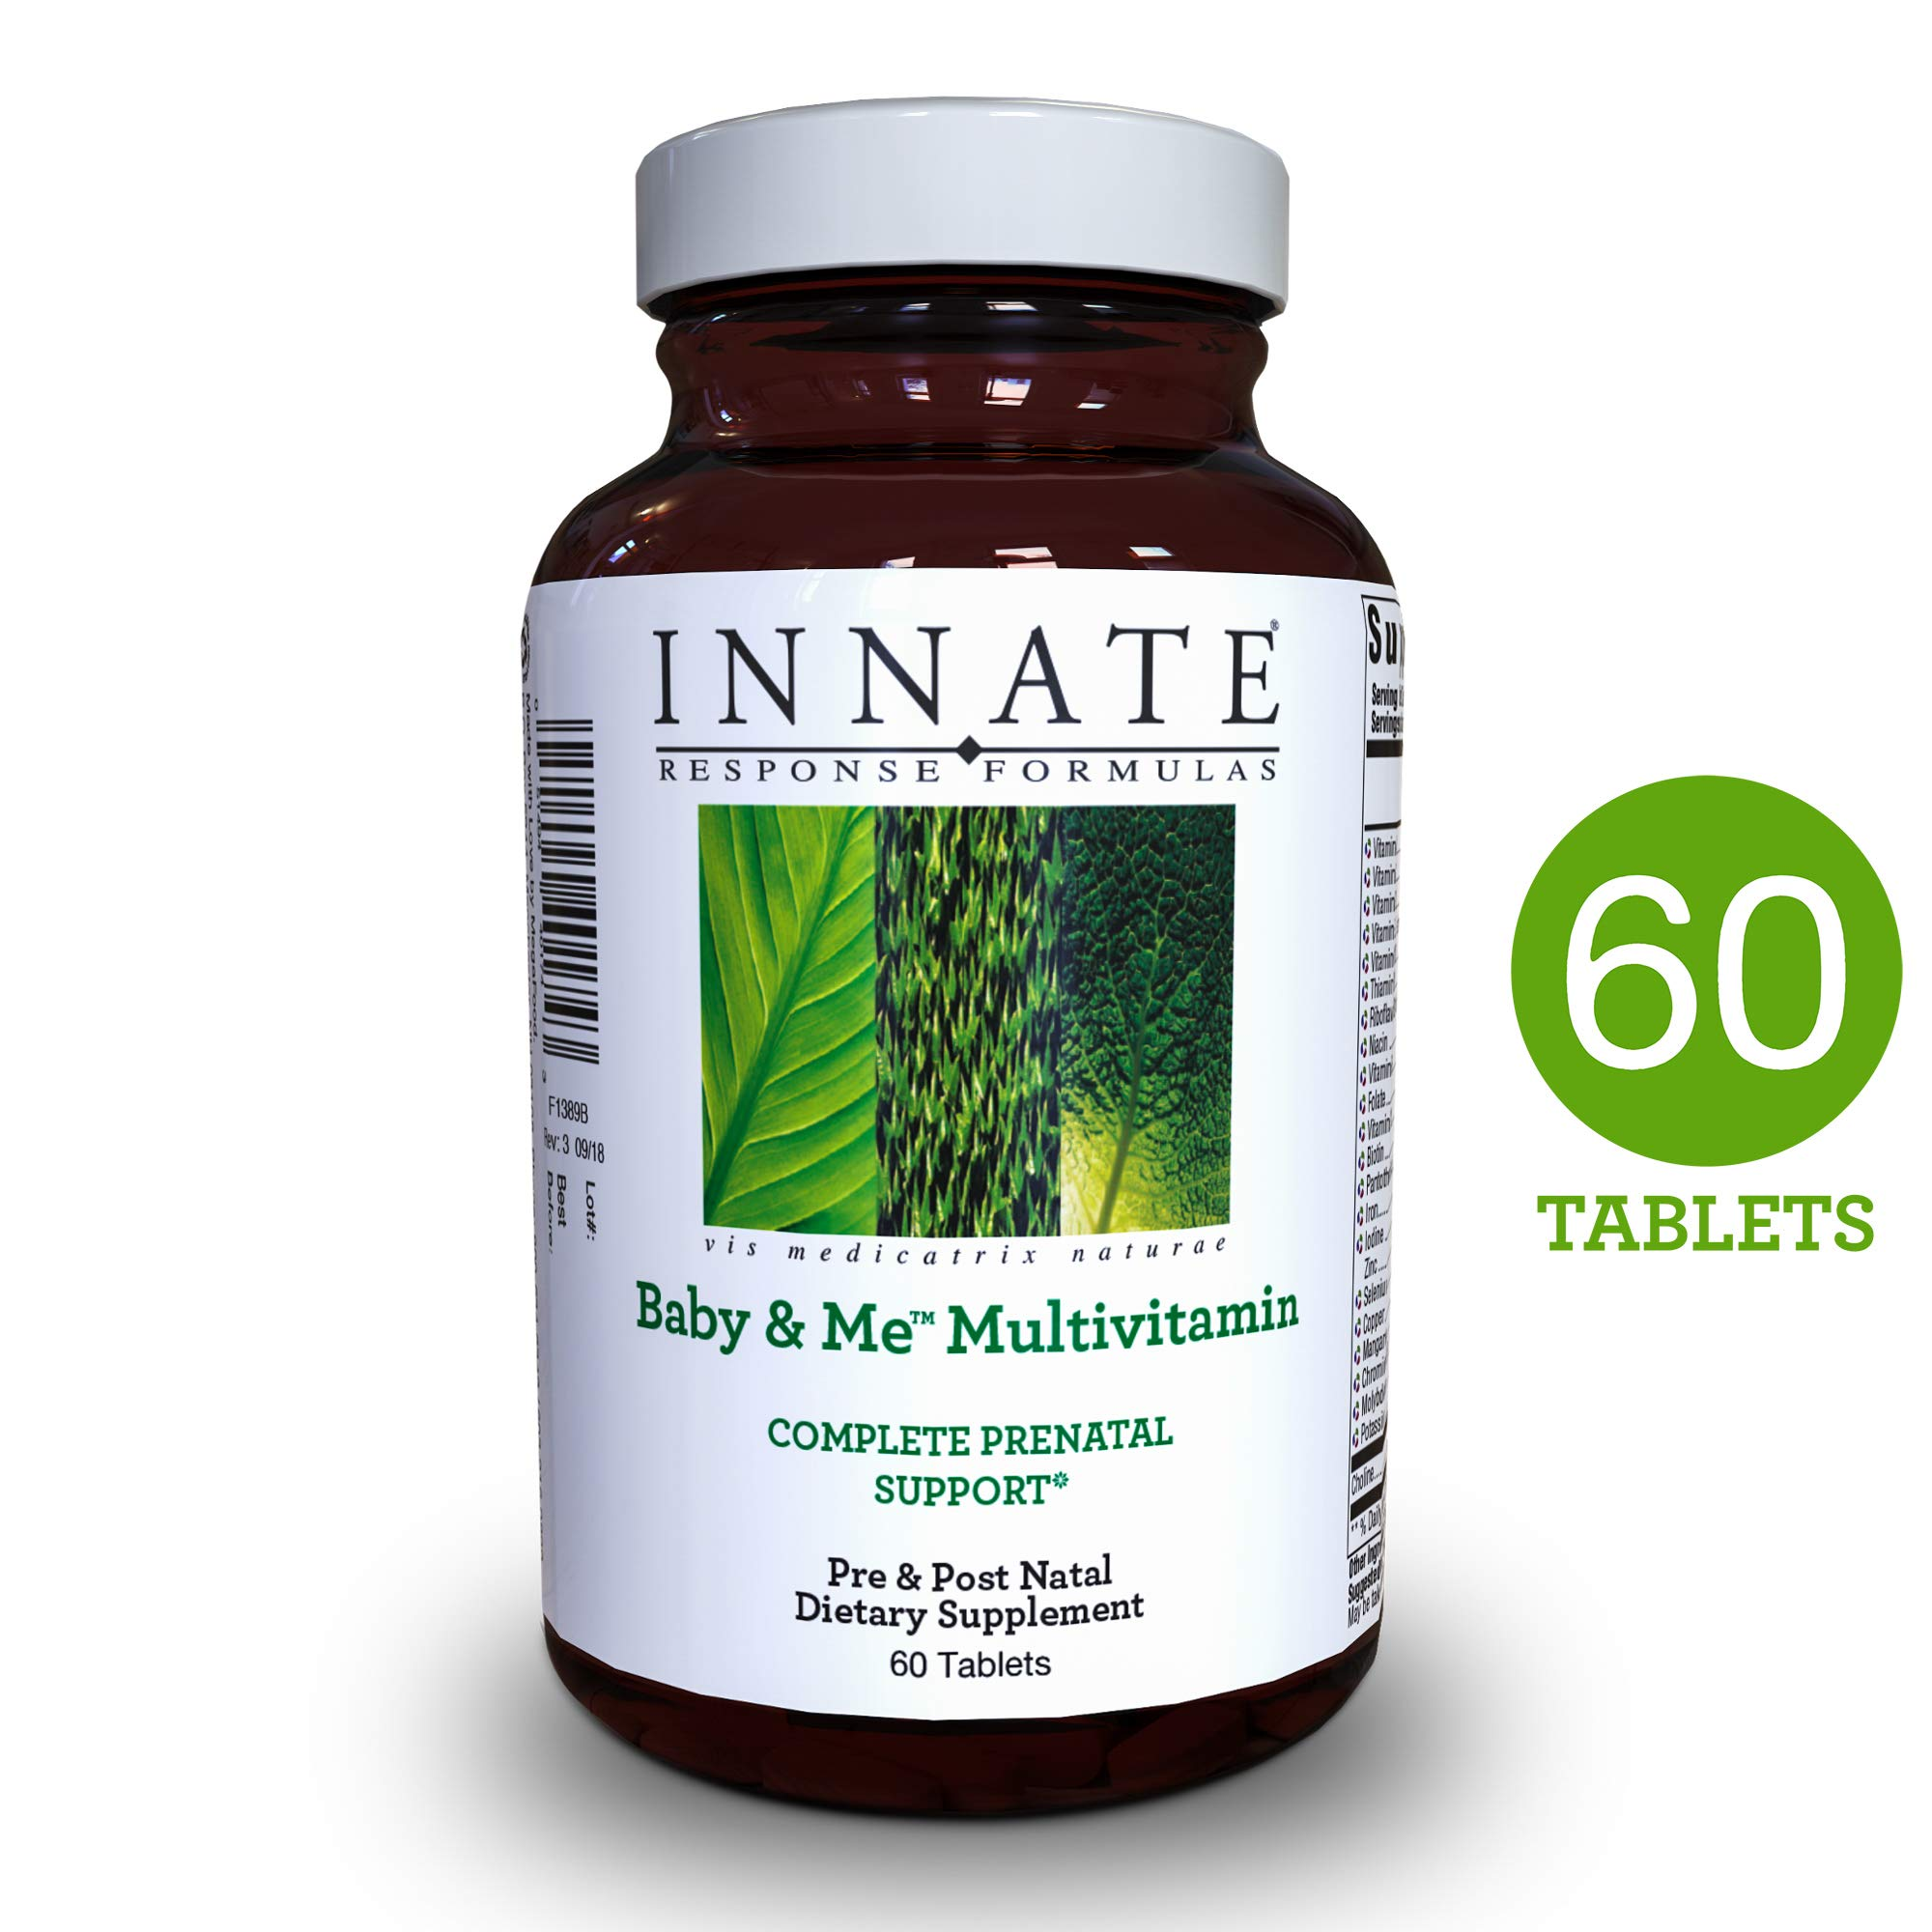 INNATE Response Formulas - Baby & Me Multi, Prenatal & Postnatal Support for Mother & Baby with Folate, 60 Tablets